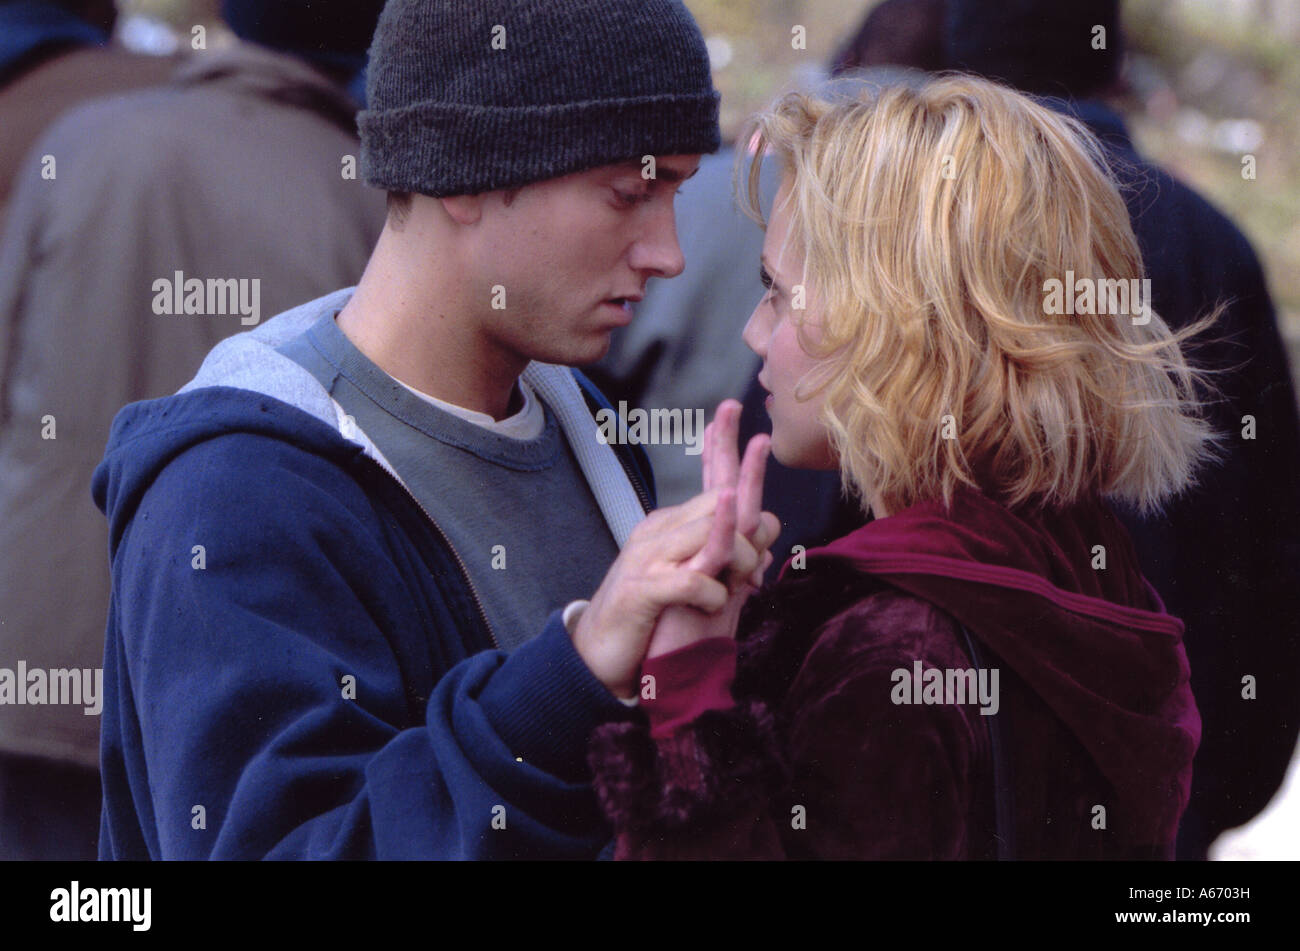 8 MILE 2002 Universal film with Eminem and Brittany Murphy - Stock Image